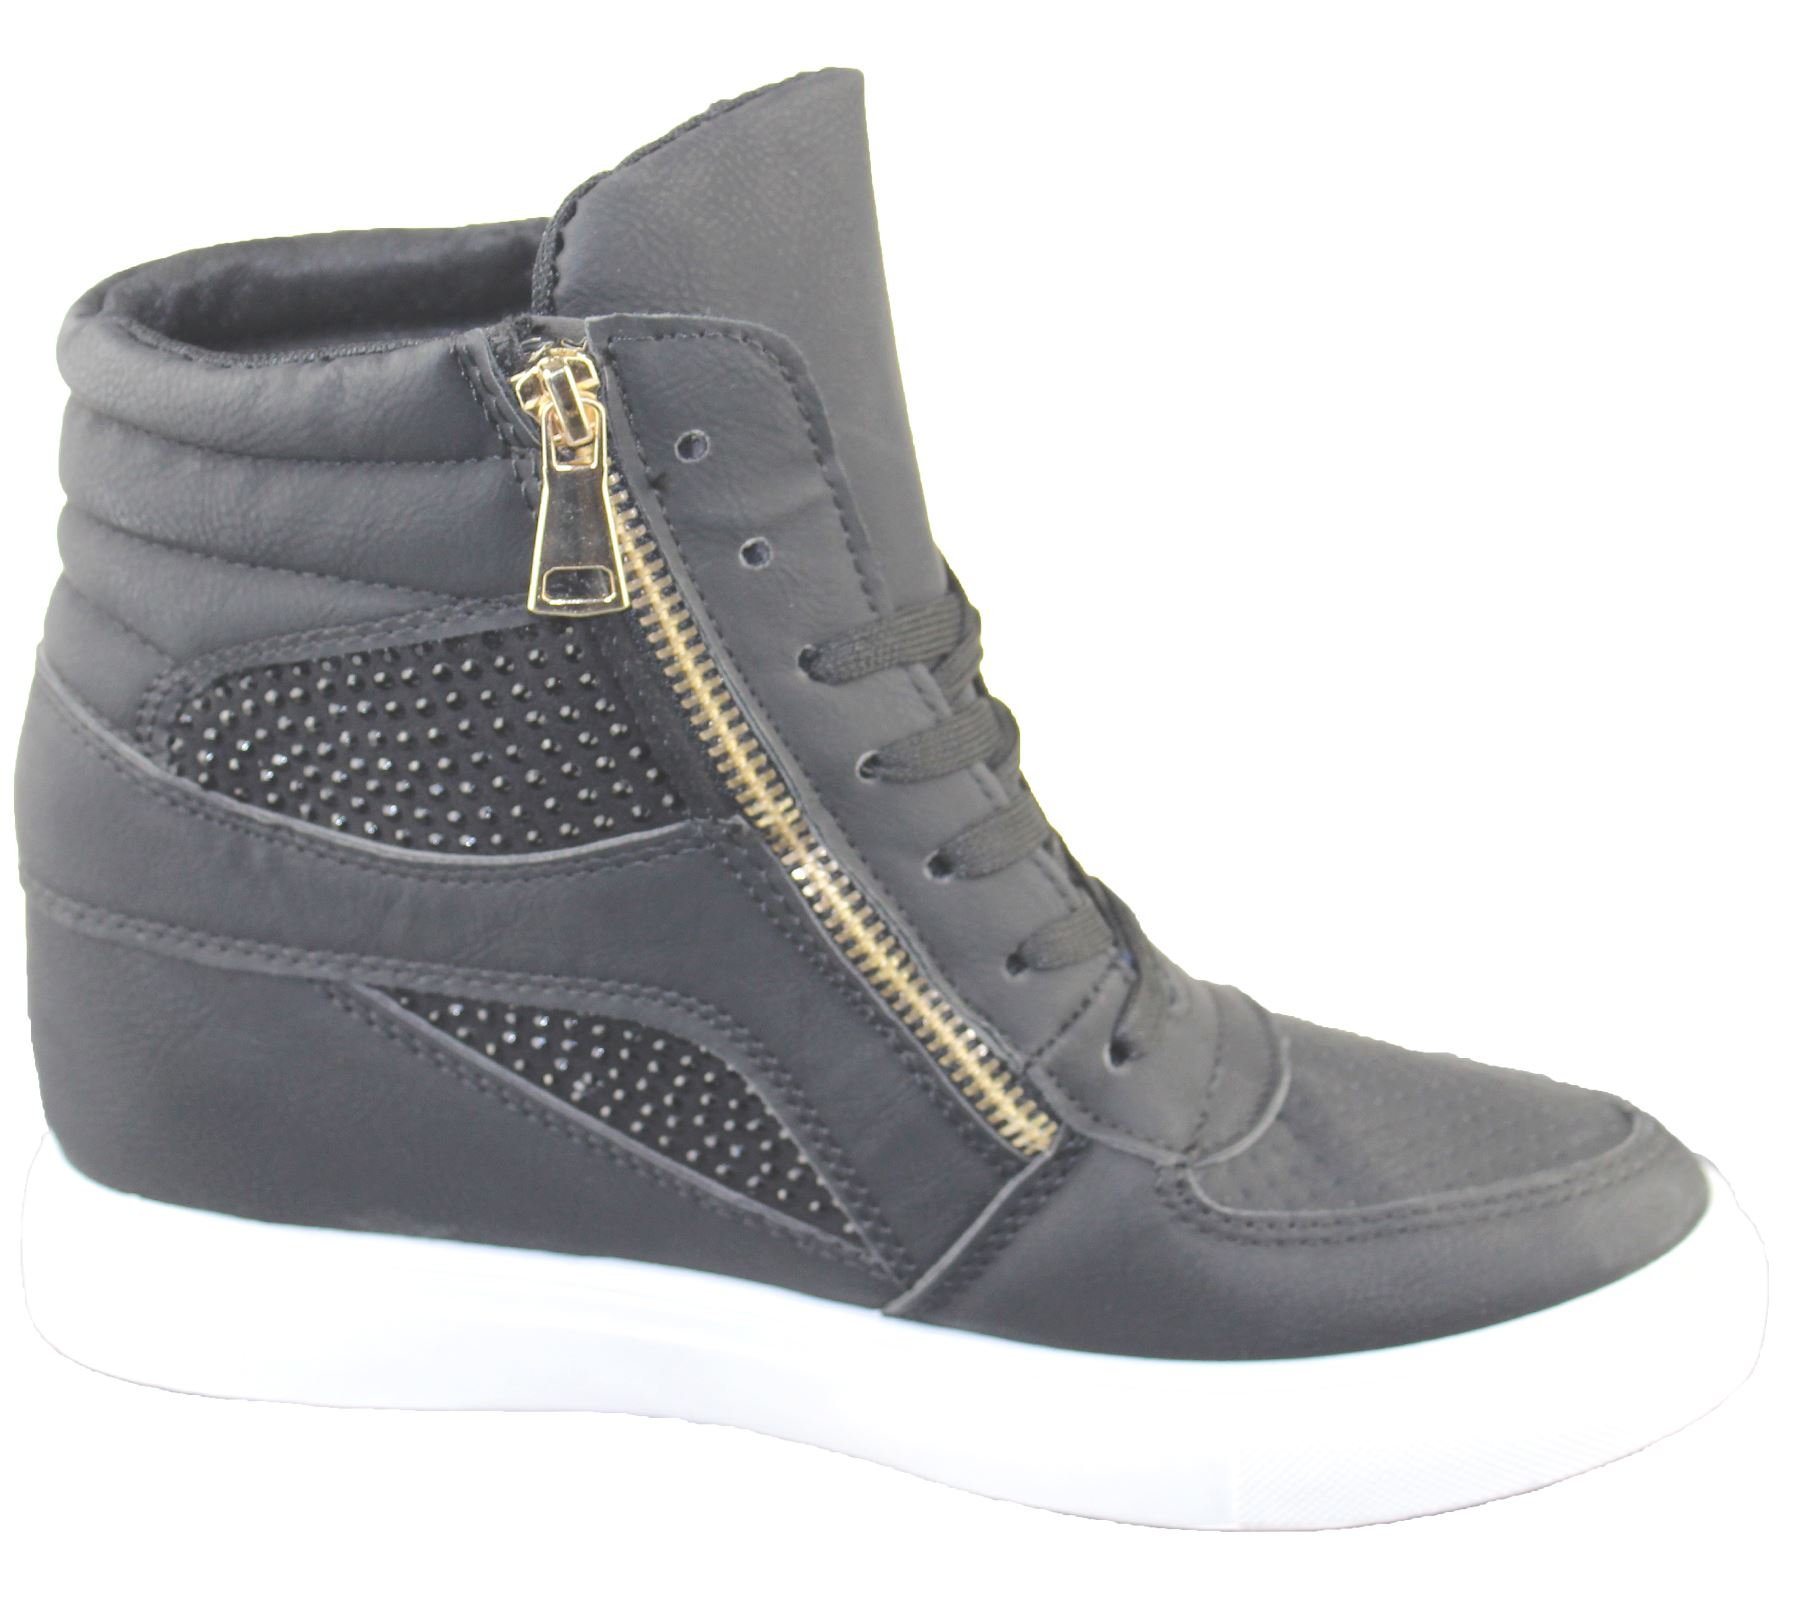 Womens Wedge Trainers Ladies Ankle Boots Sneakers Girl High Top Shoes